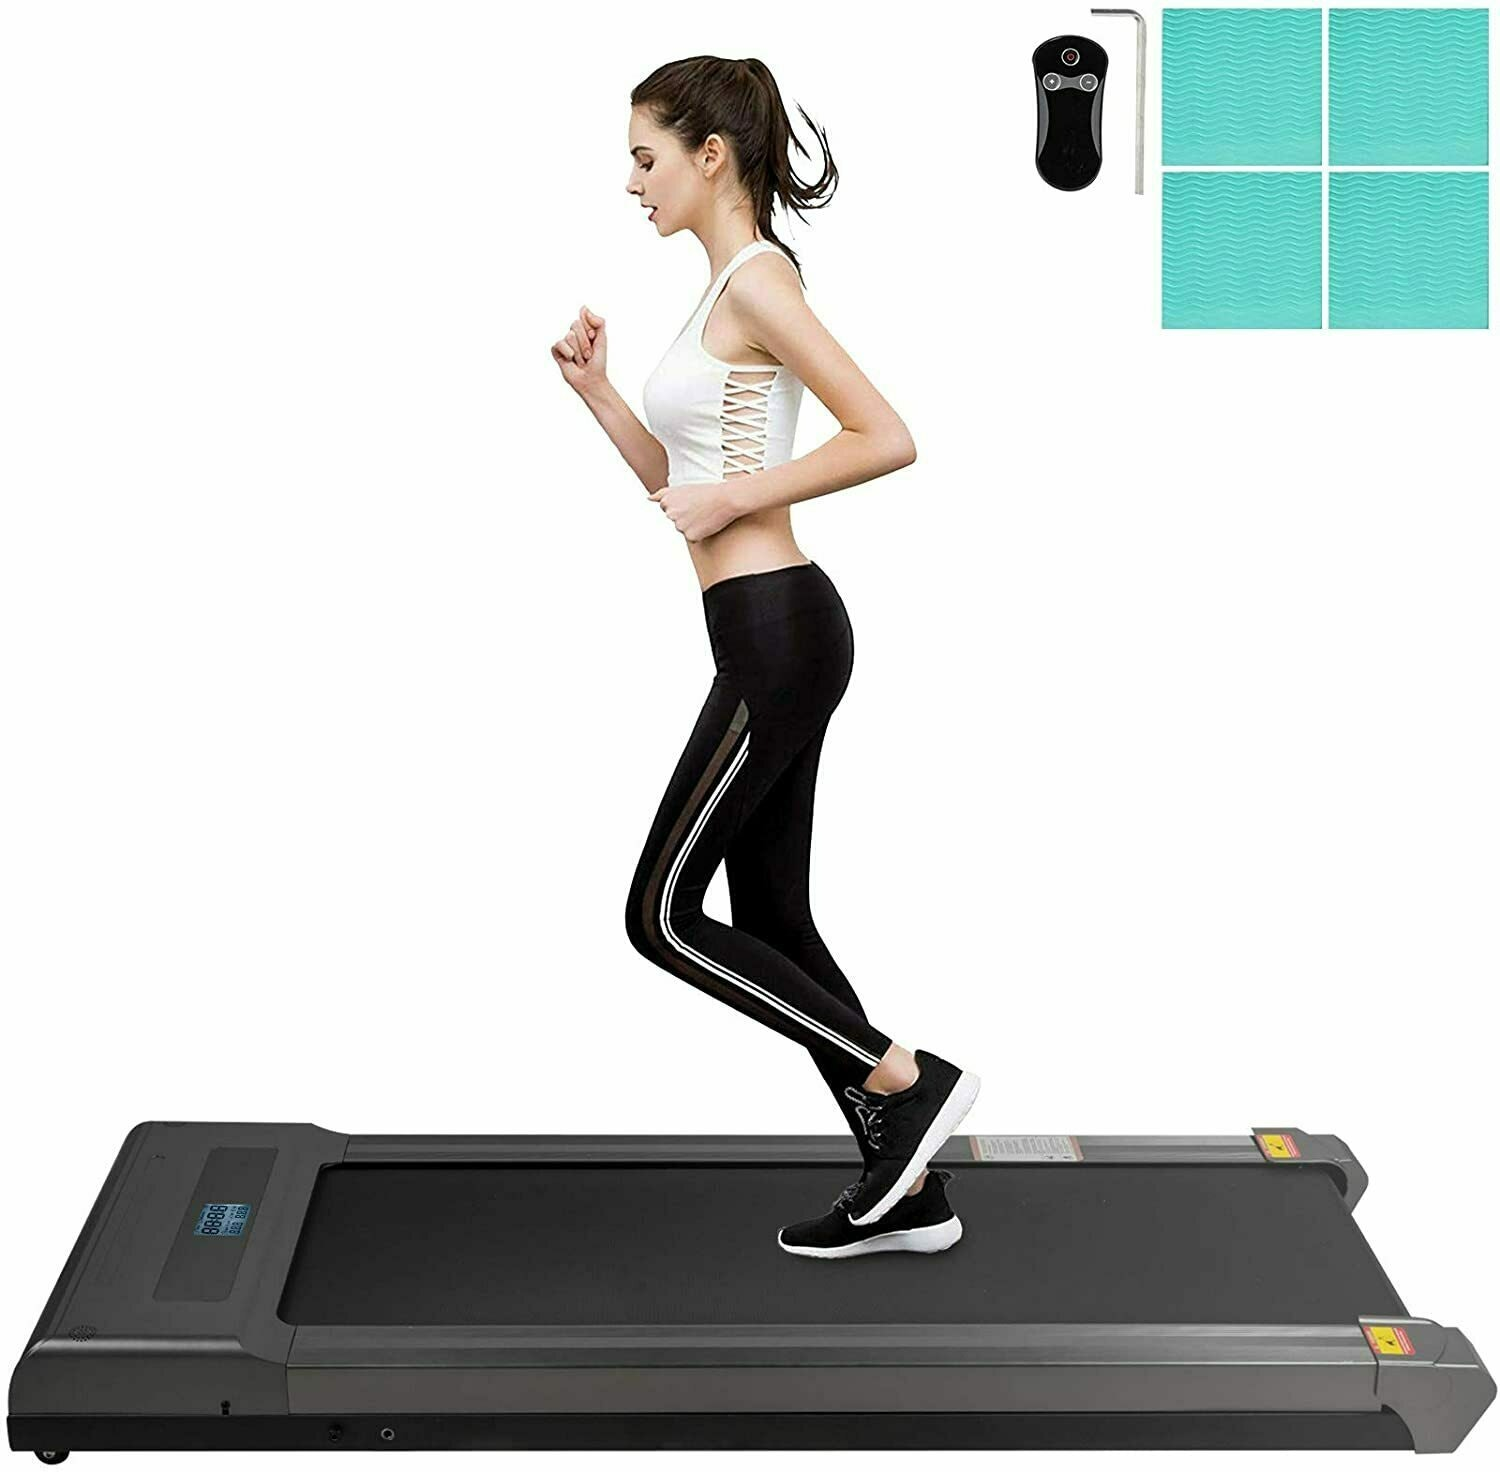 Happybuy Treadmill, Silver Under Desk Treadmills